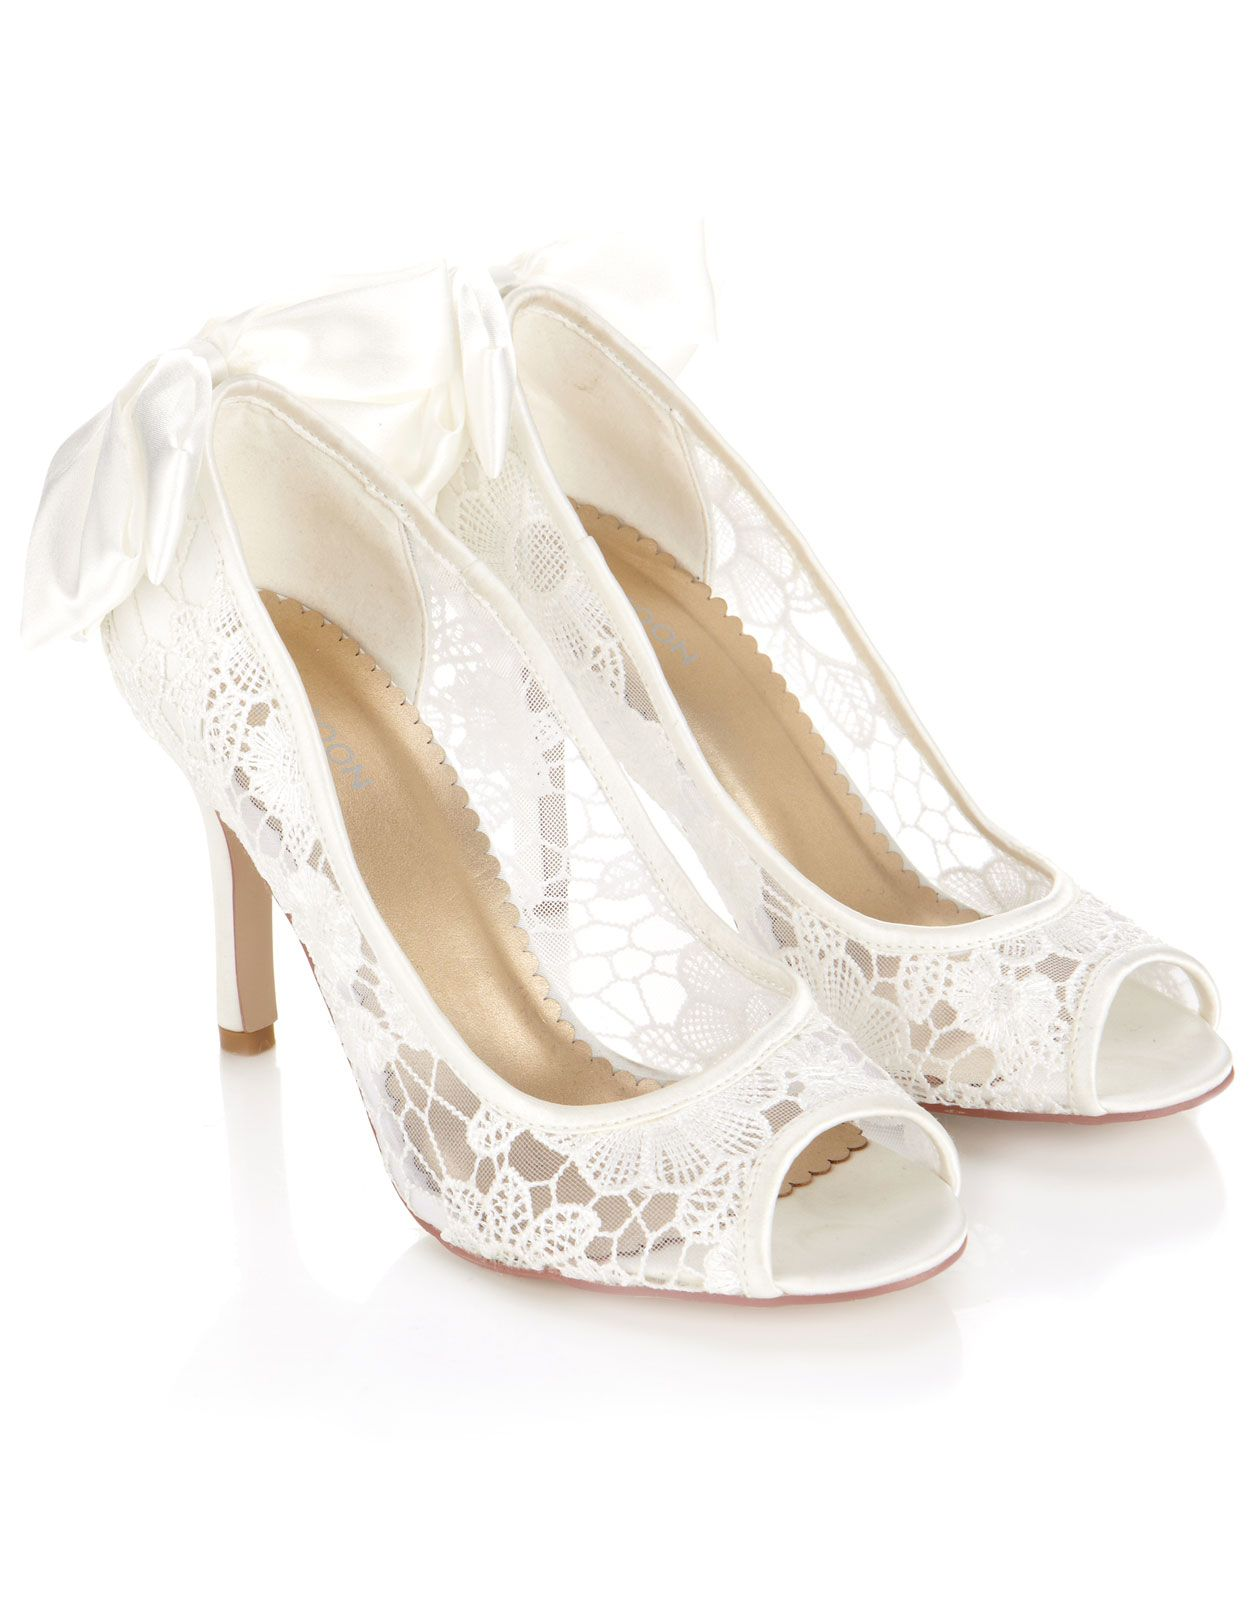 Charmant Lilliana Vintage Bow Peeptoe In Ivory From Monsoon. I Have Just Bought  These, Soooooo Excited! Vintage Wedding Shoes ...